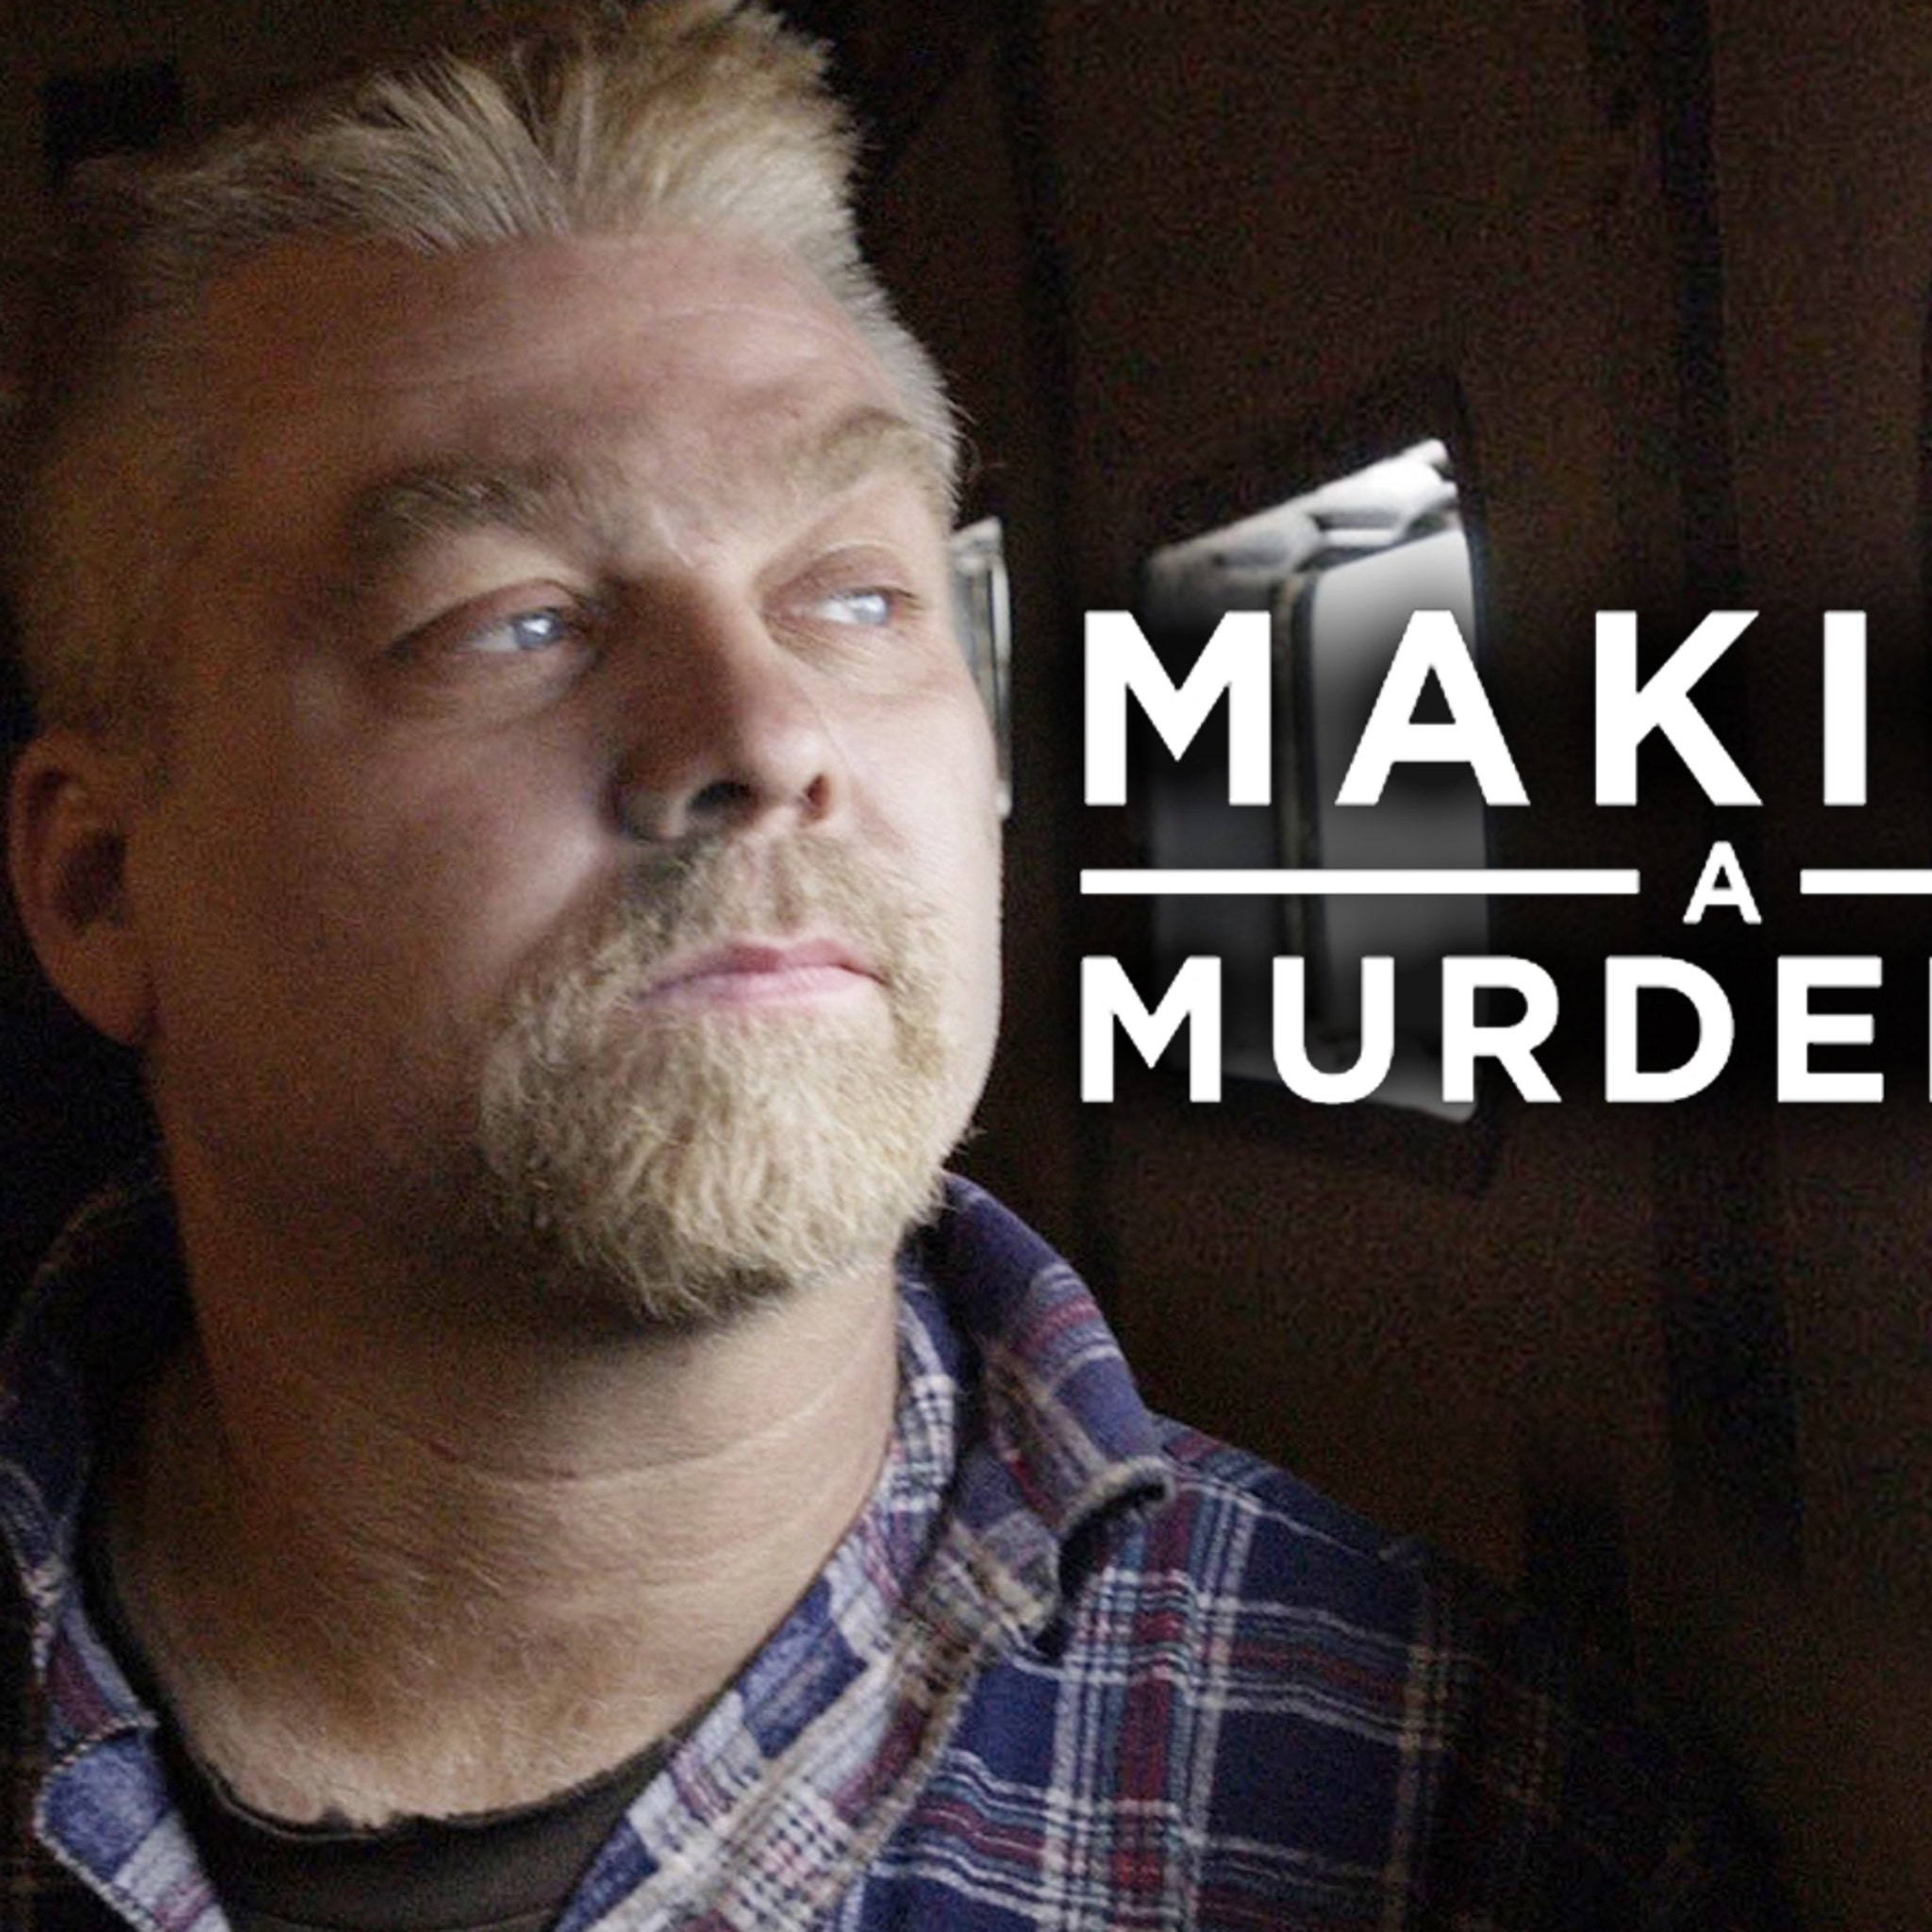 New 'Making a Murderer' Confession in Doubt by DOJ, Director Elaborates